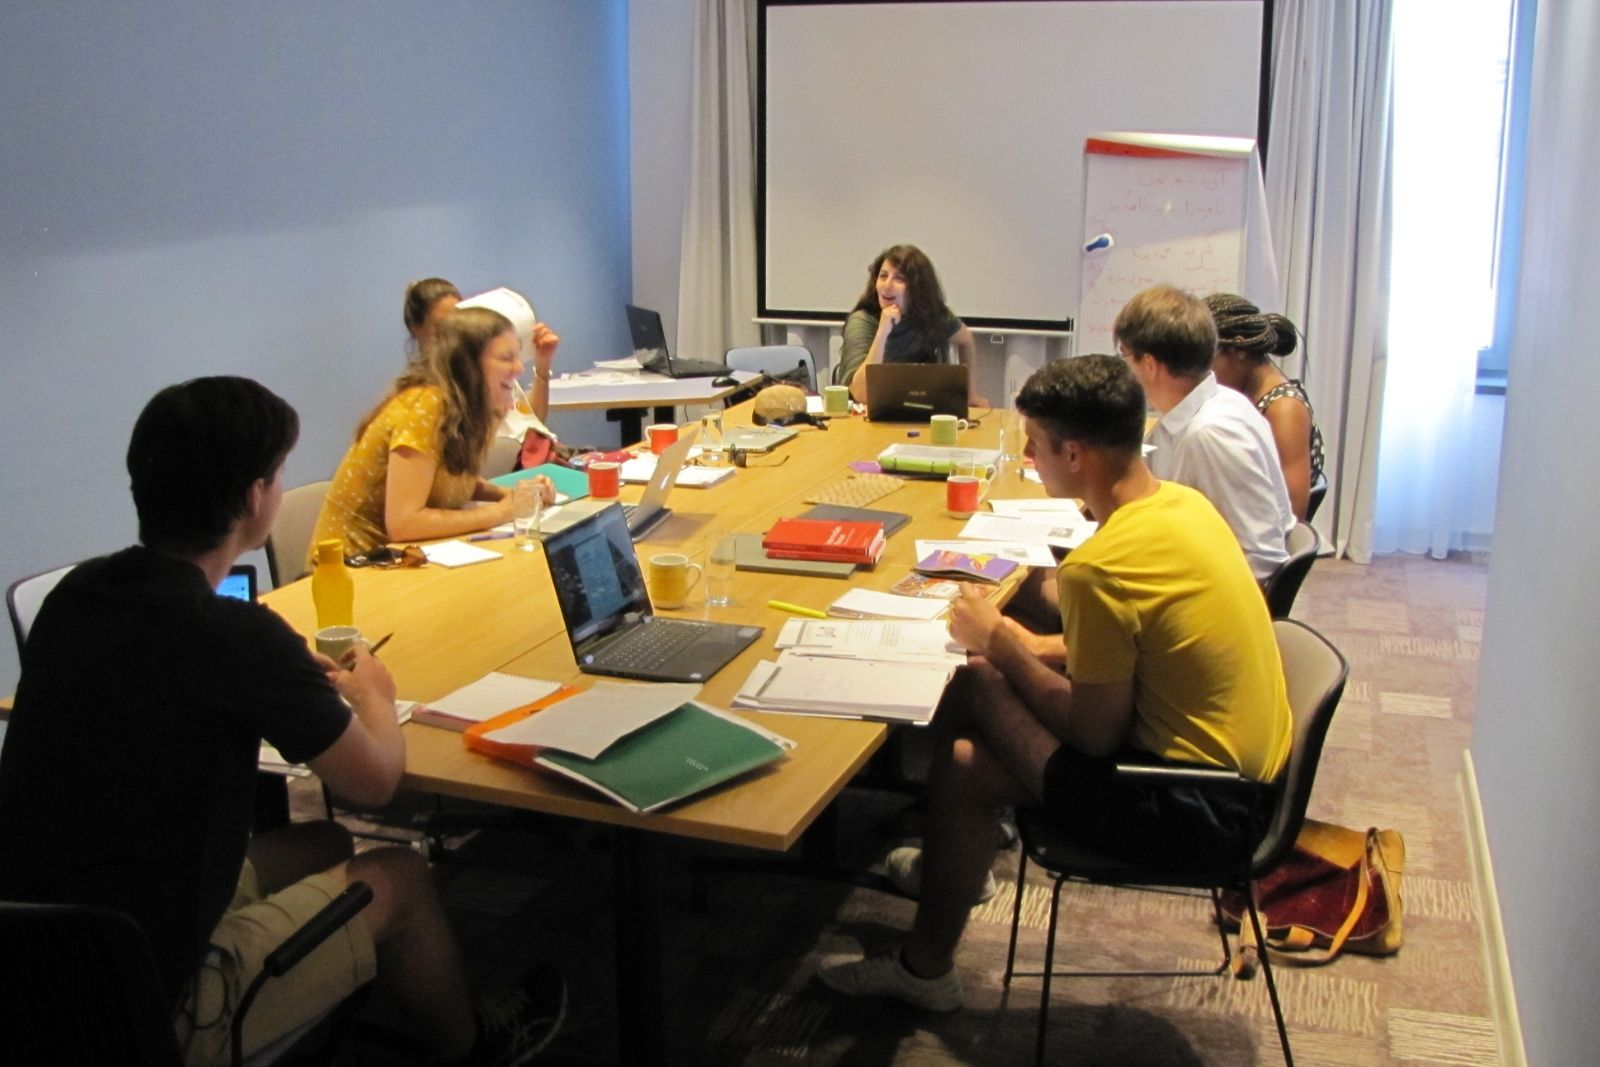 Persian language summer school students during the class in Yerevan, 2018